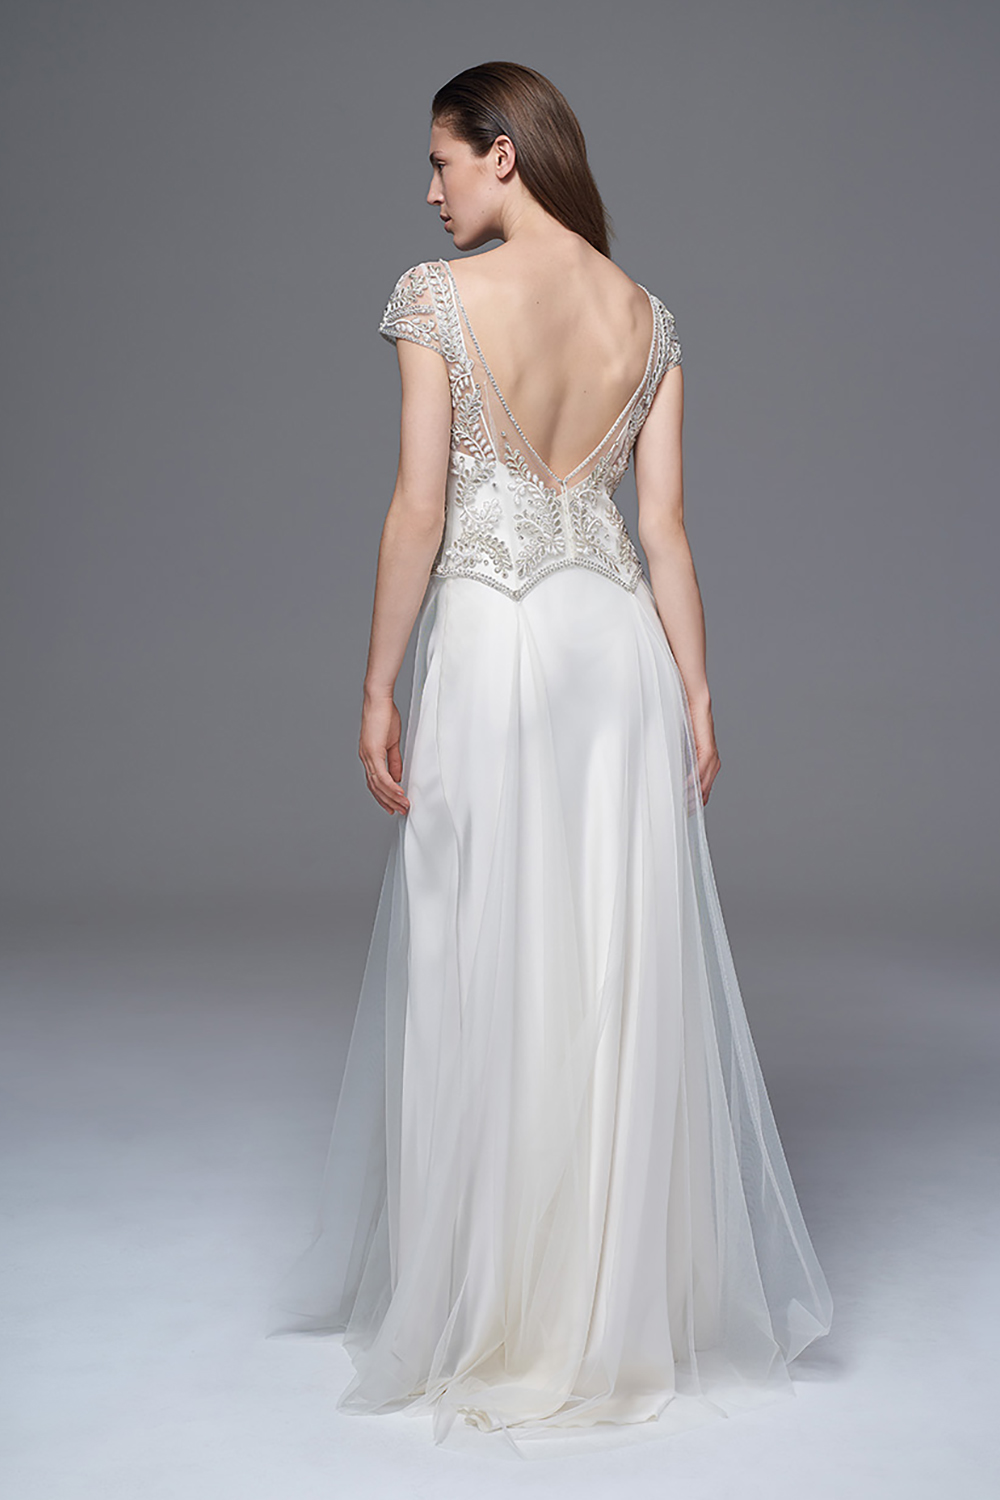 THE MARIANNE HAND BEADED AND EMBROIDERED DRESS WITH A LOW V BACK AND DROP WAIST WORN WITH THE CLASSIC IRIS SLIP. BRIDAL WEDDING DRESS BY HALFPENNY LONDON